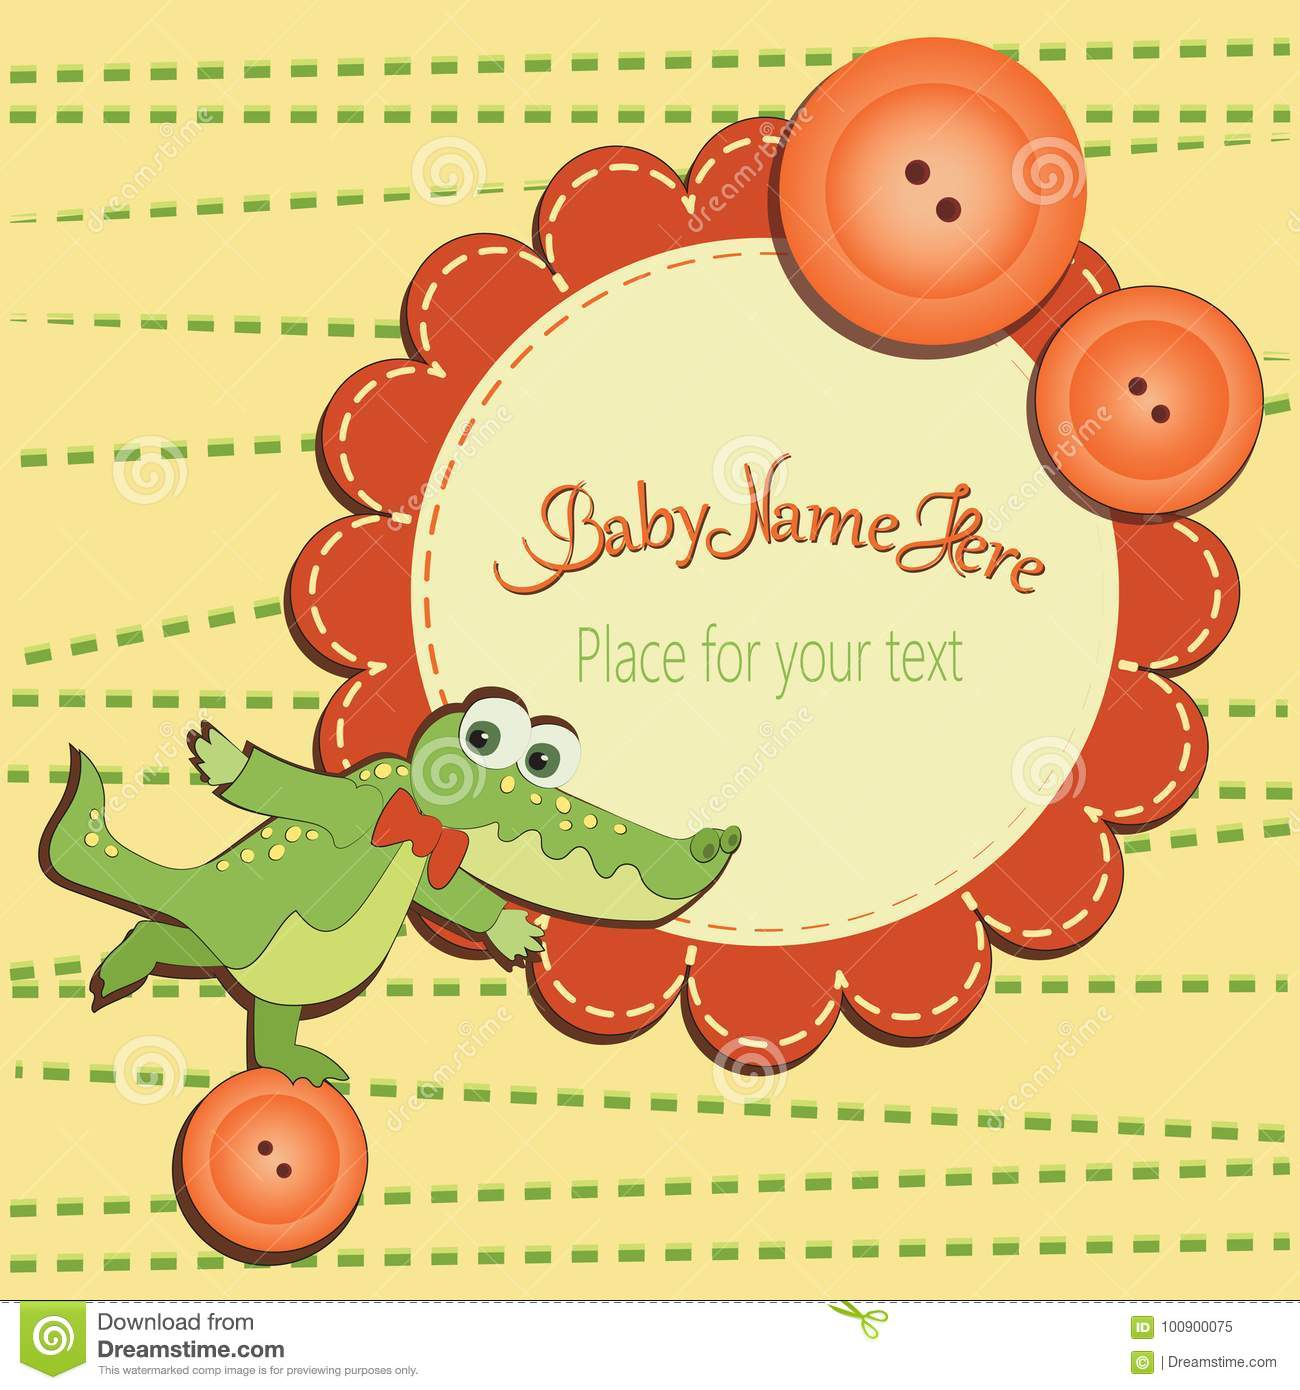 Funny crocodile on the button stock vector illustration of funny crocodile on the buttonby shower invitations to templates greetings with cute toys a place for your text gift box design with letters and m4hsunfo